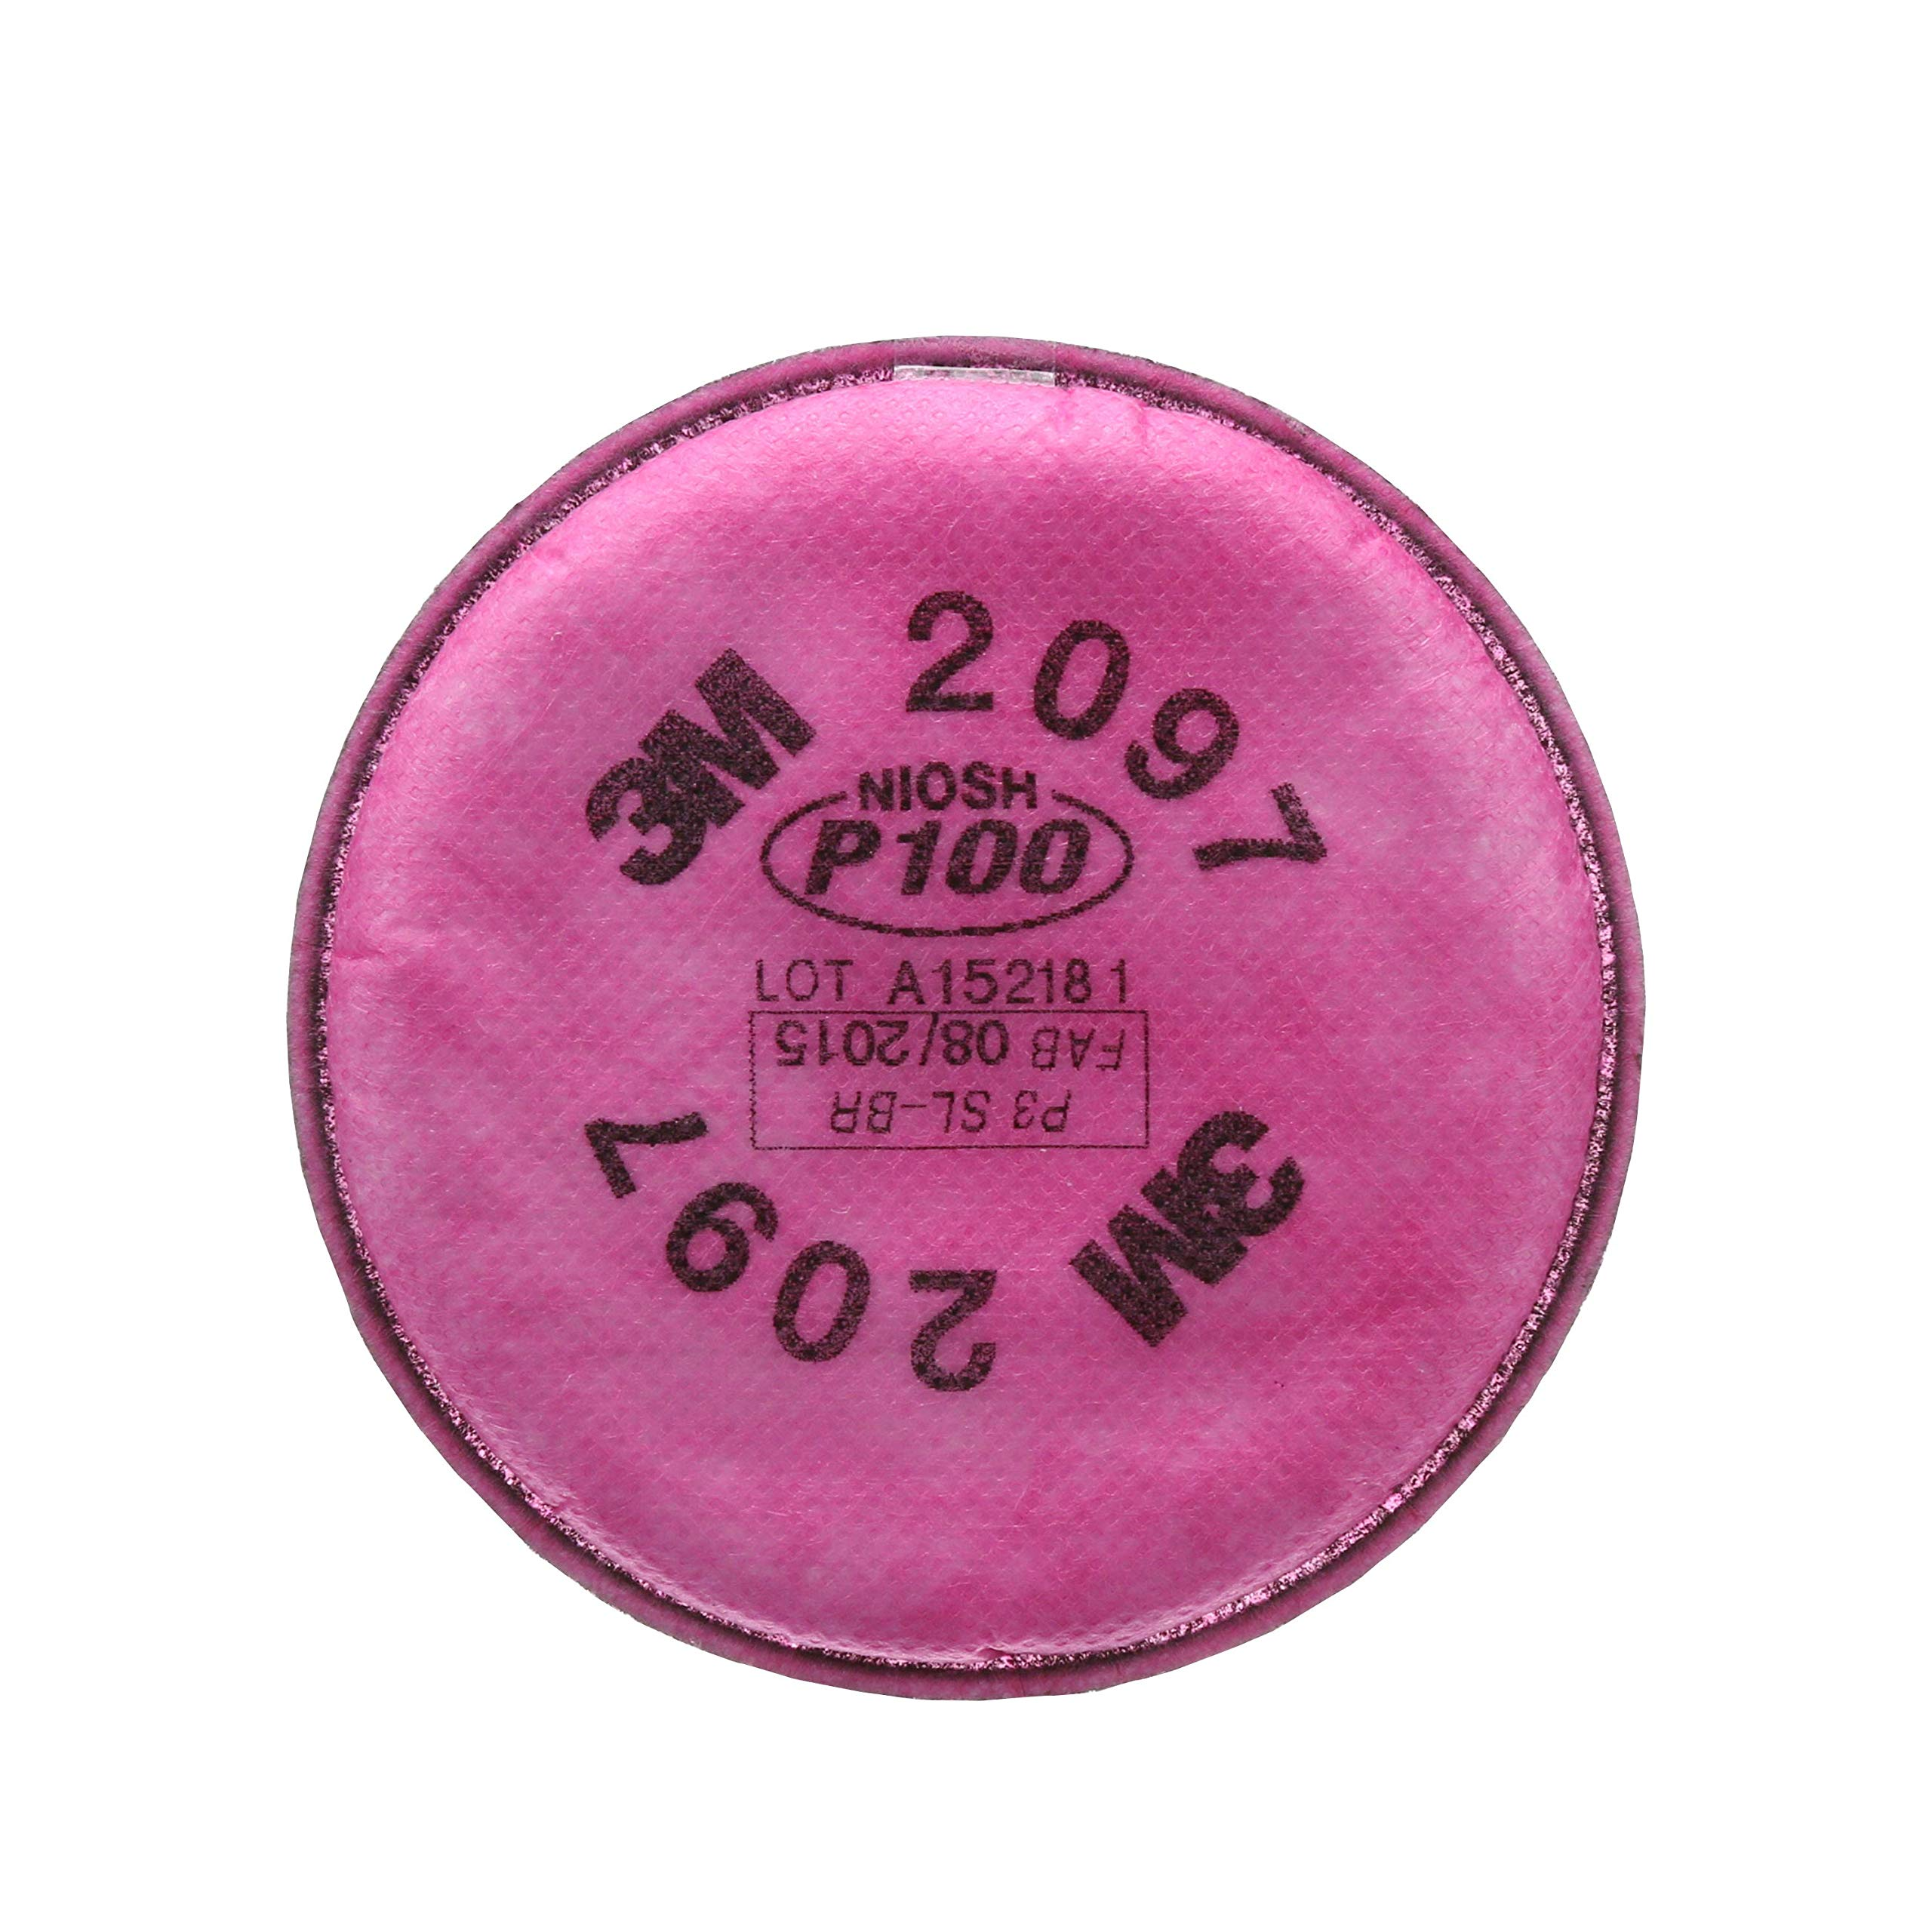 3M Particulate Filter 2097/07184(AAD), P100 Respiratory Protection, with Nuisance Level Organic Vapor Relief (50 Pairs)